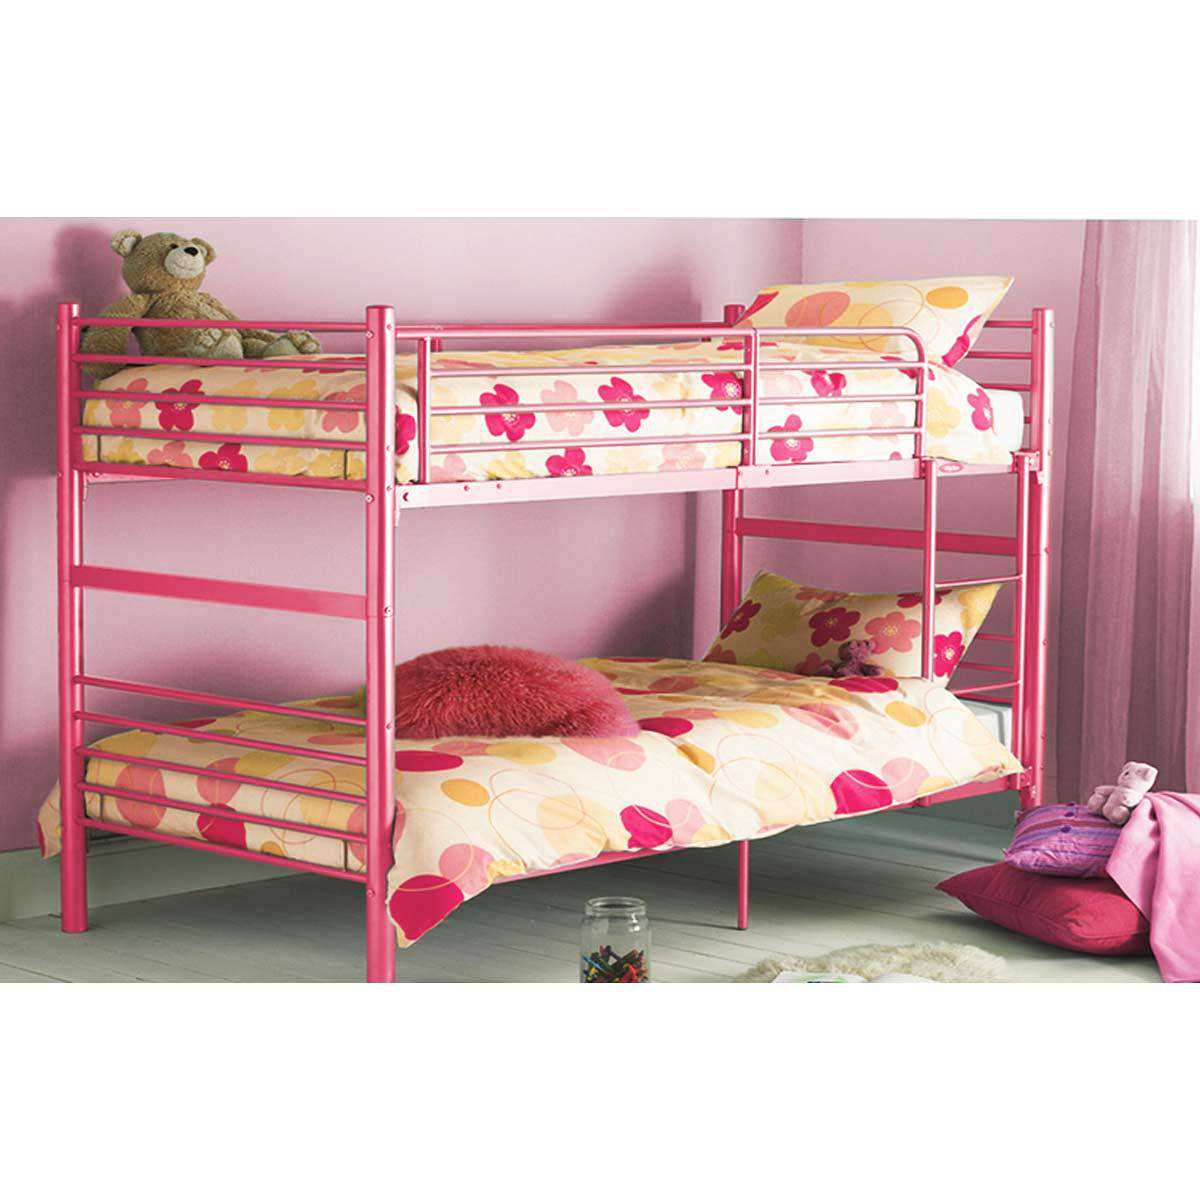 cute bunk beds photo - 1